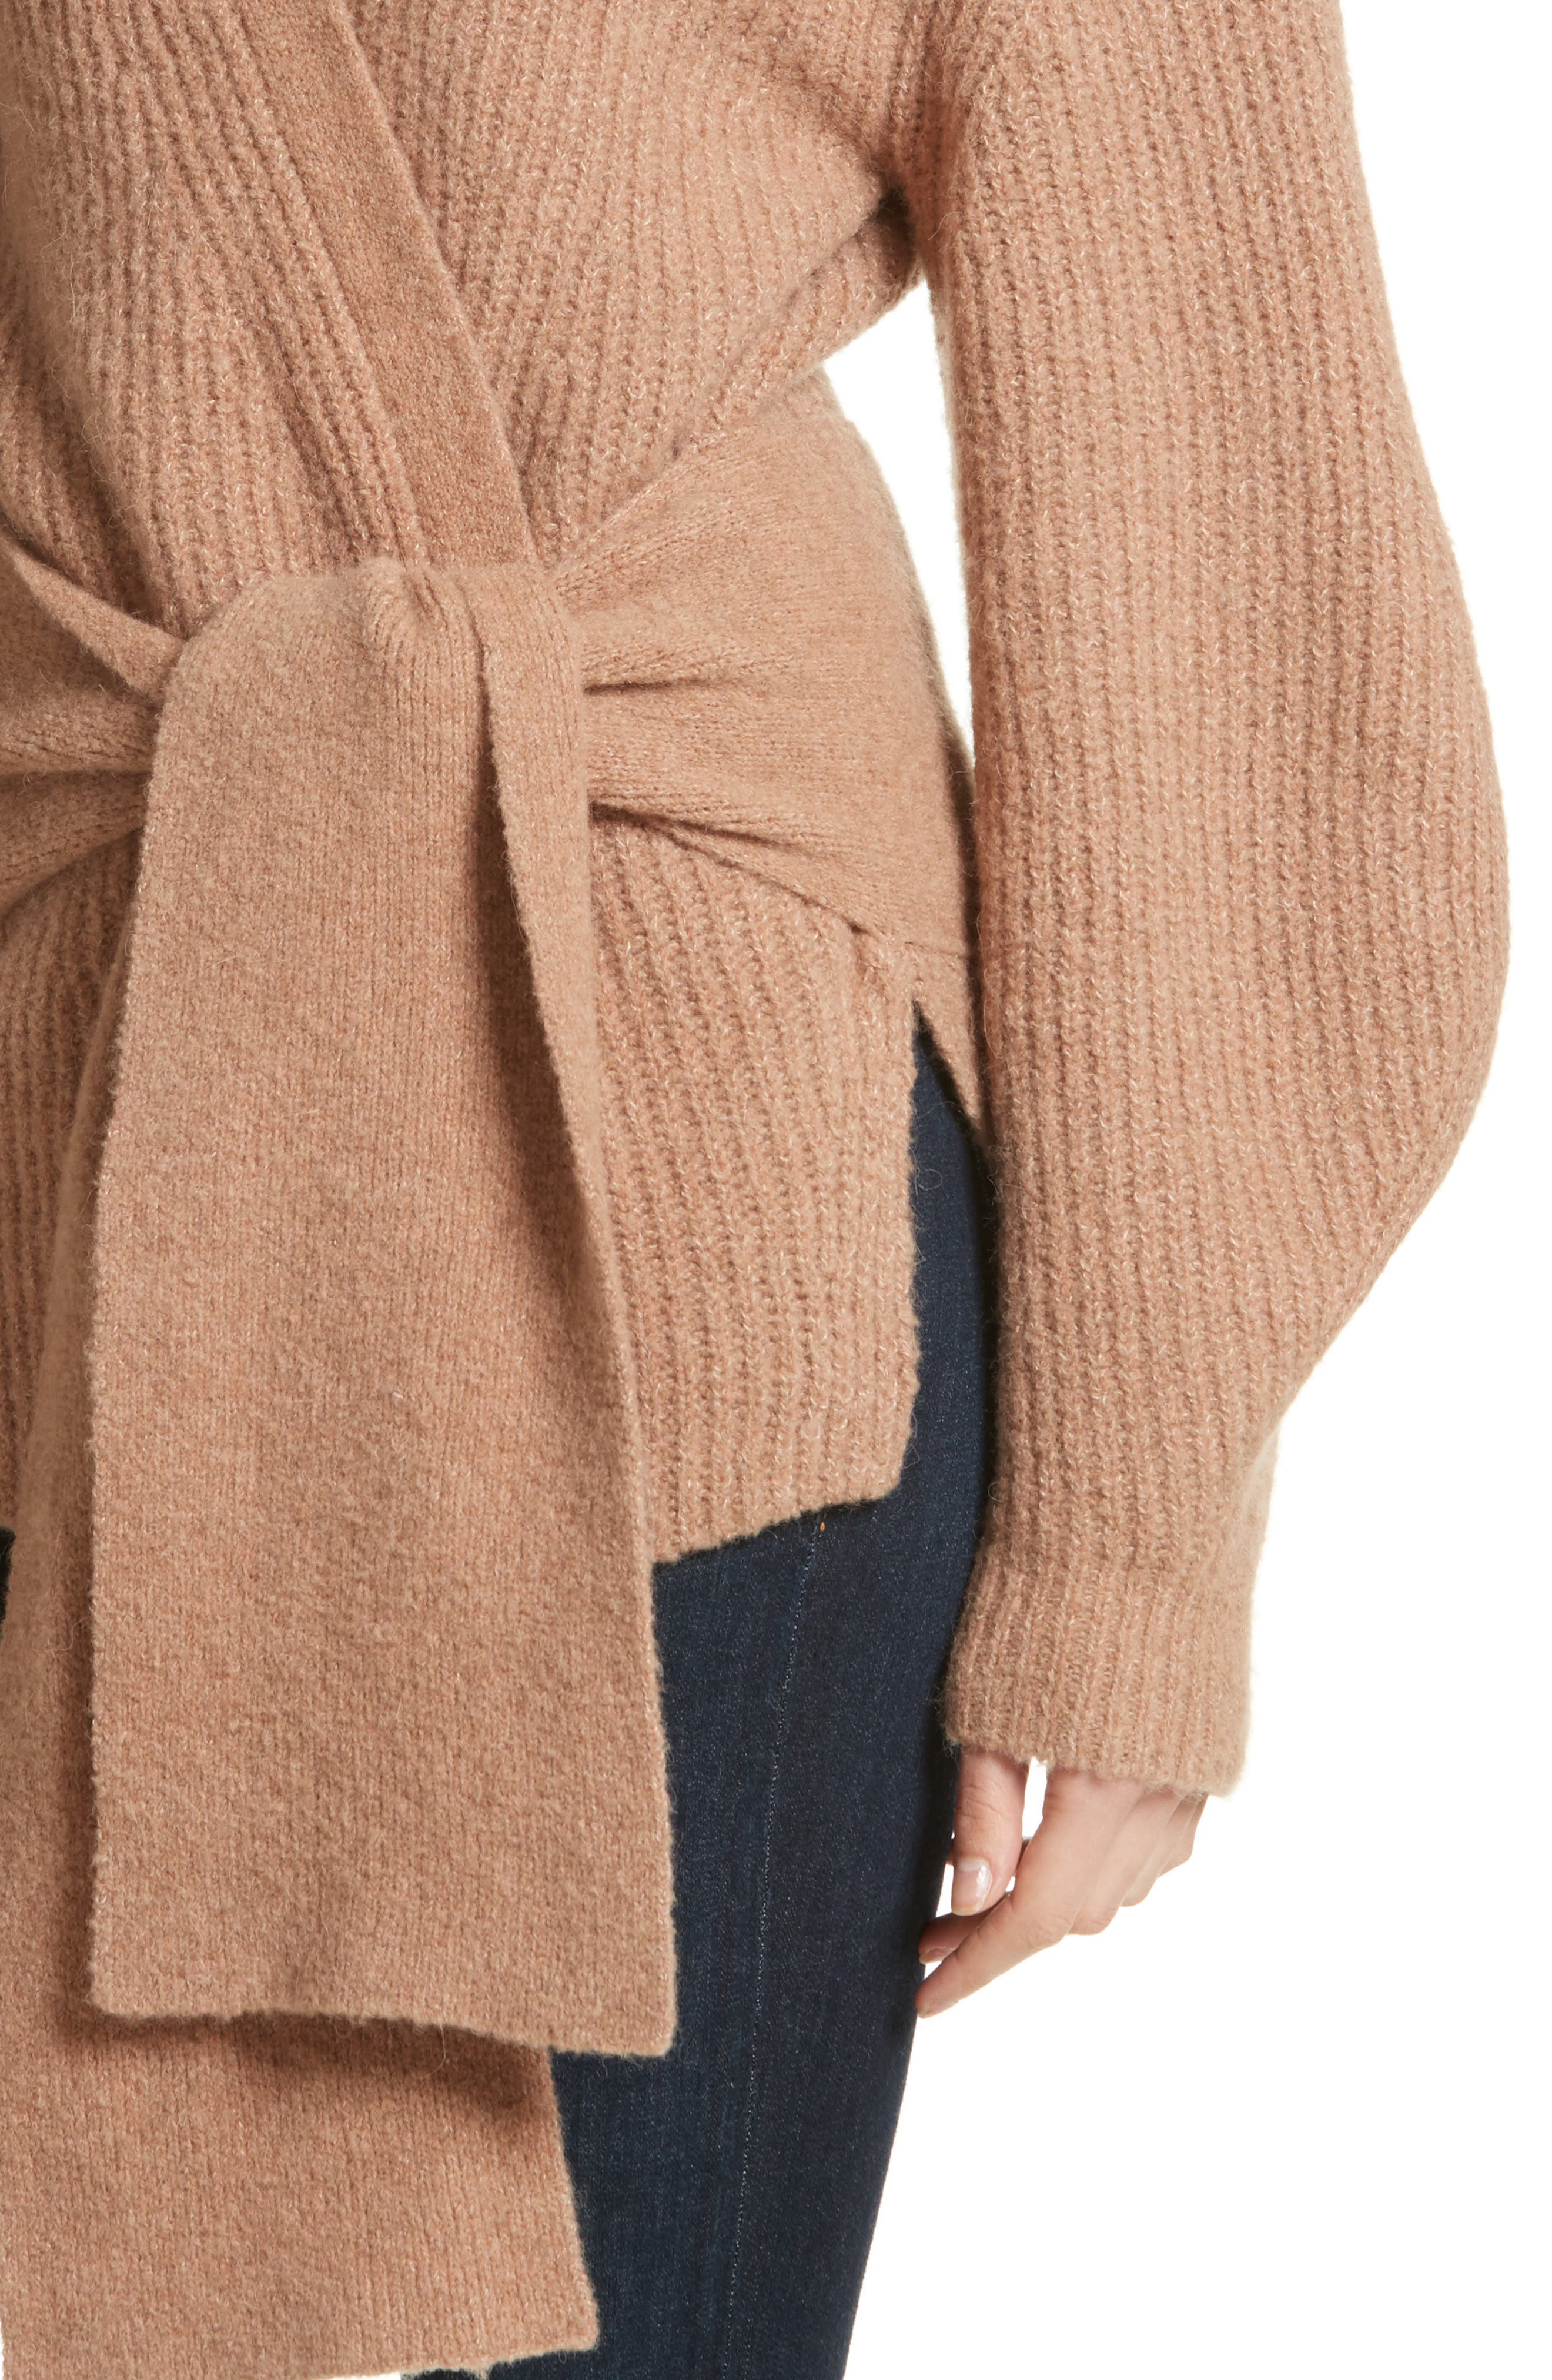 Hansen Belted Cardigan,                             Alternate thumbnail 4, color,                             020